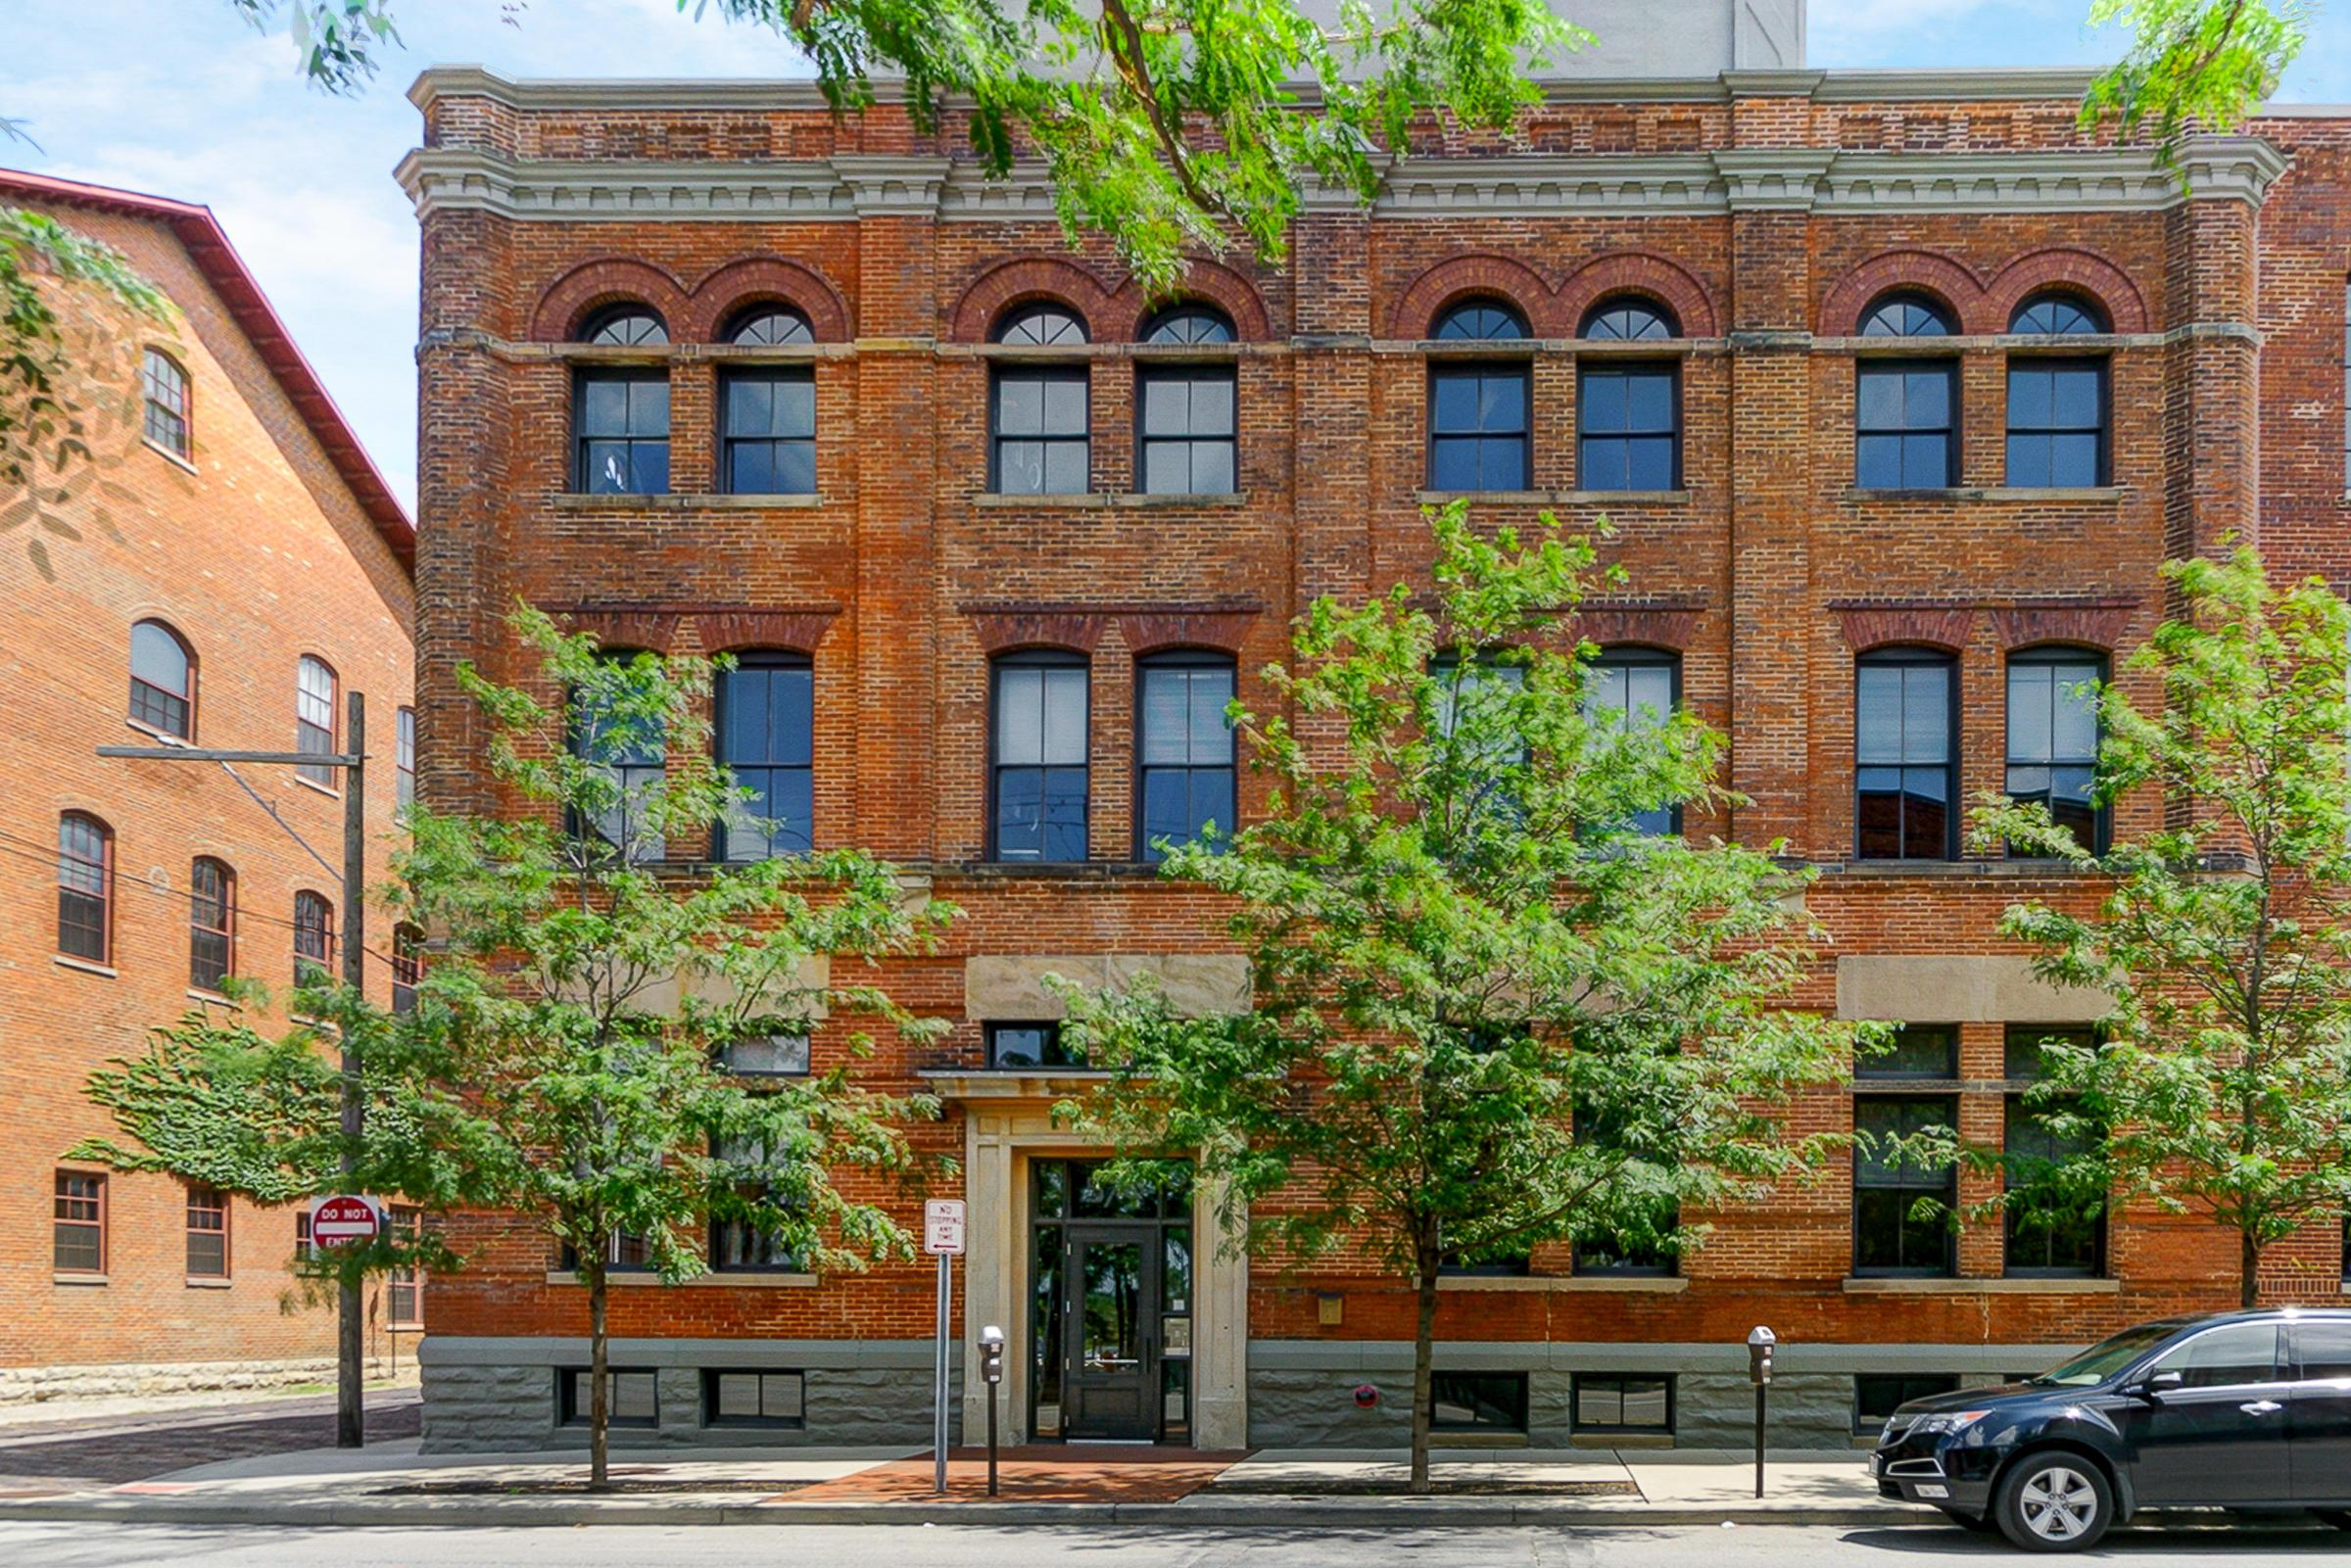 570 Front Street, Columbus, Ohio 43215, 1 Bedroom Bedrooms, ,1 BathroomBathrooms,Residential,For Sale,Front,220018743